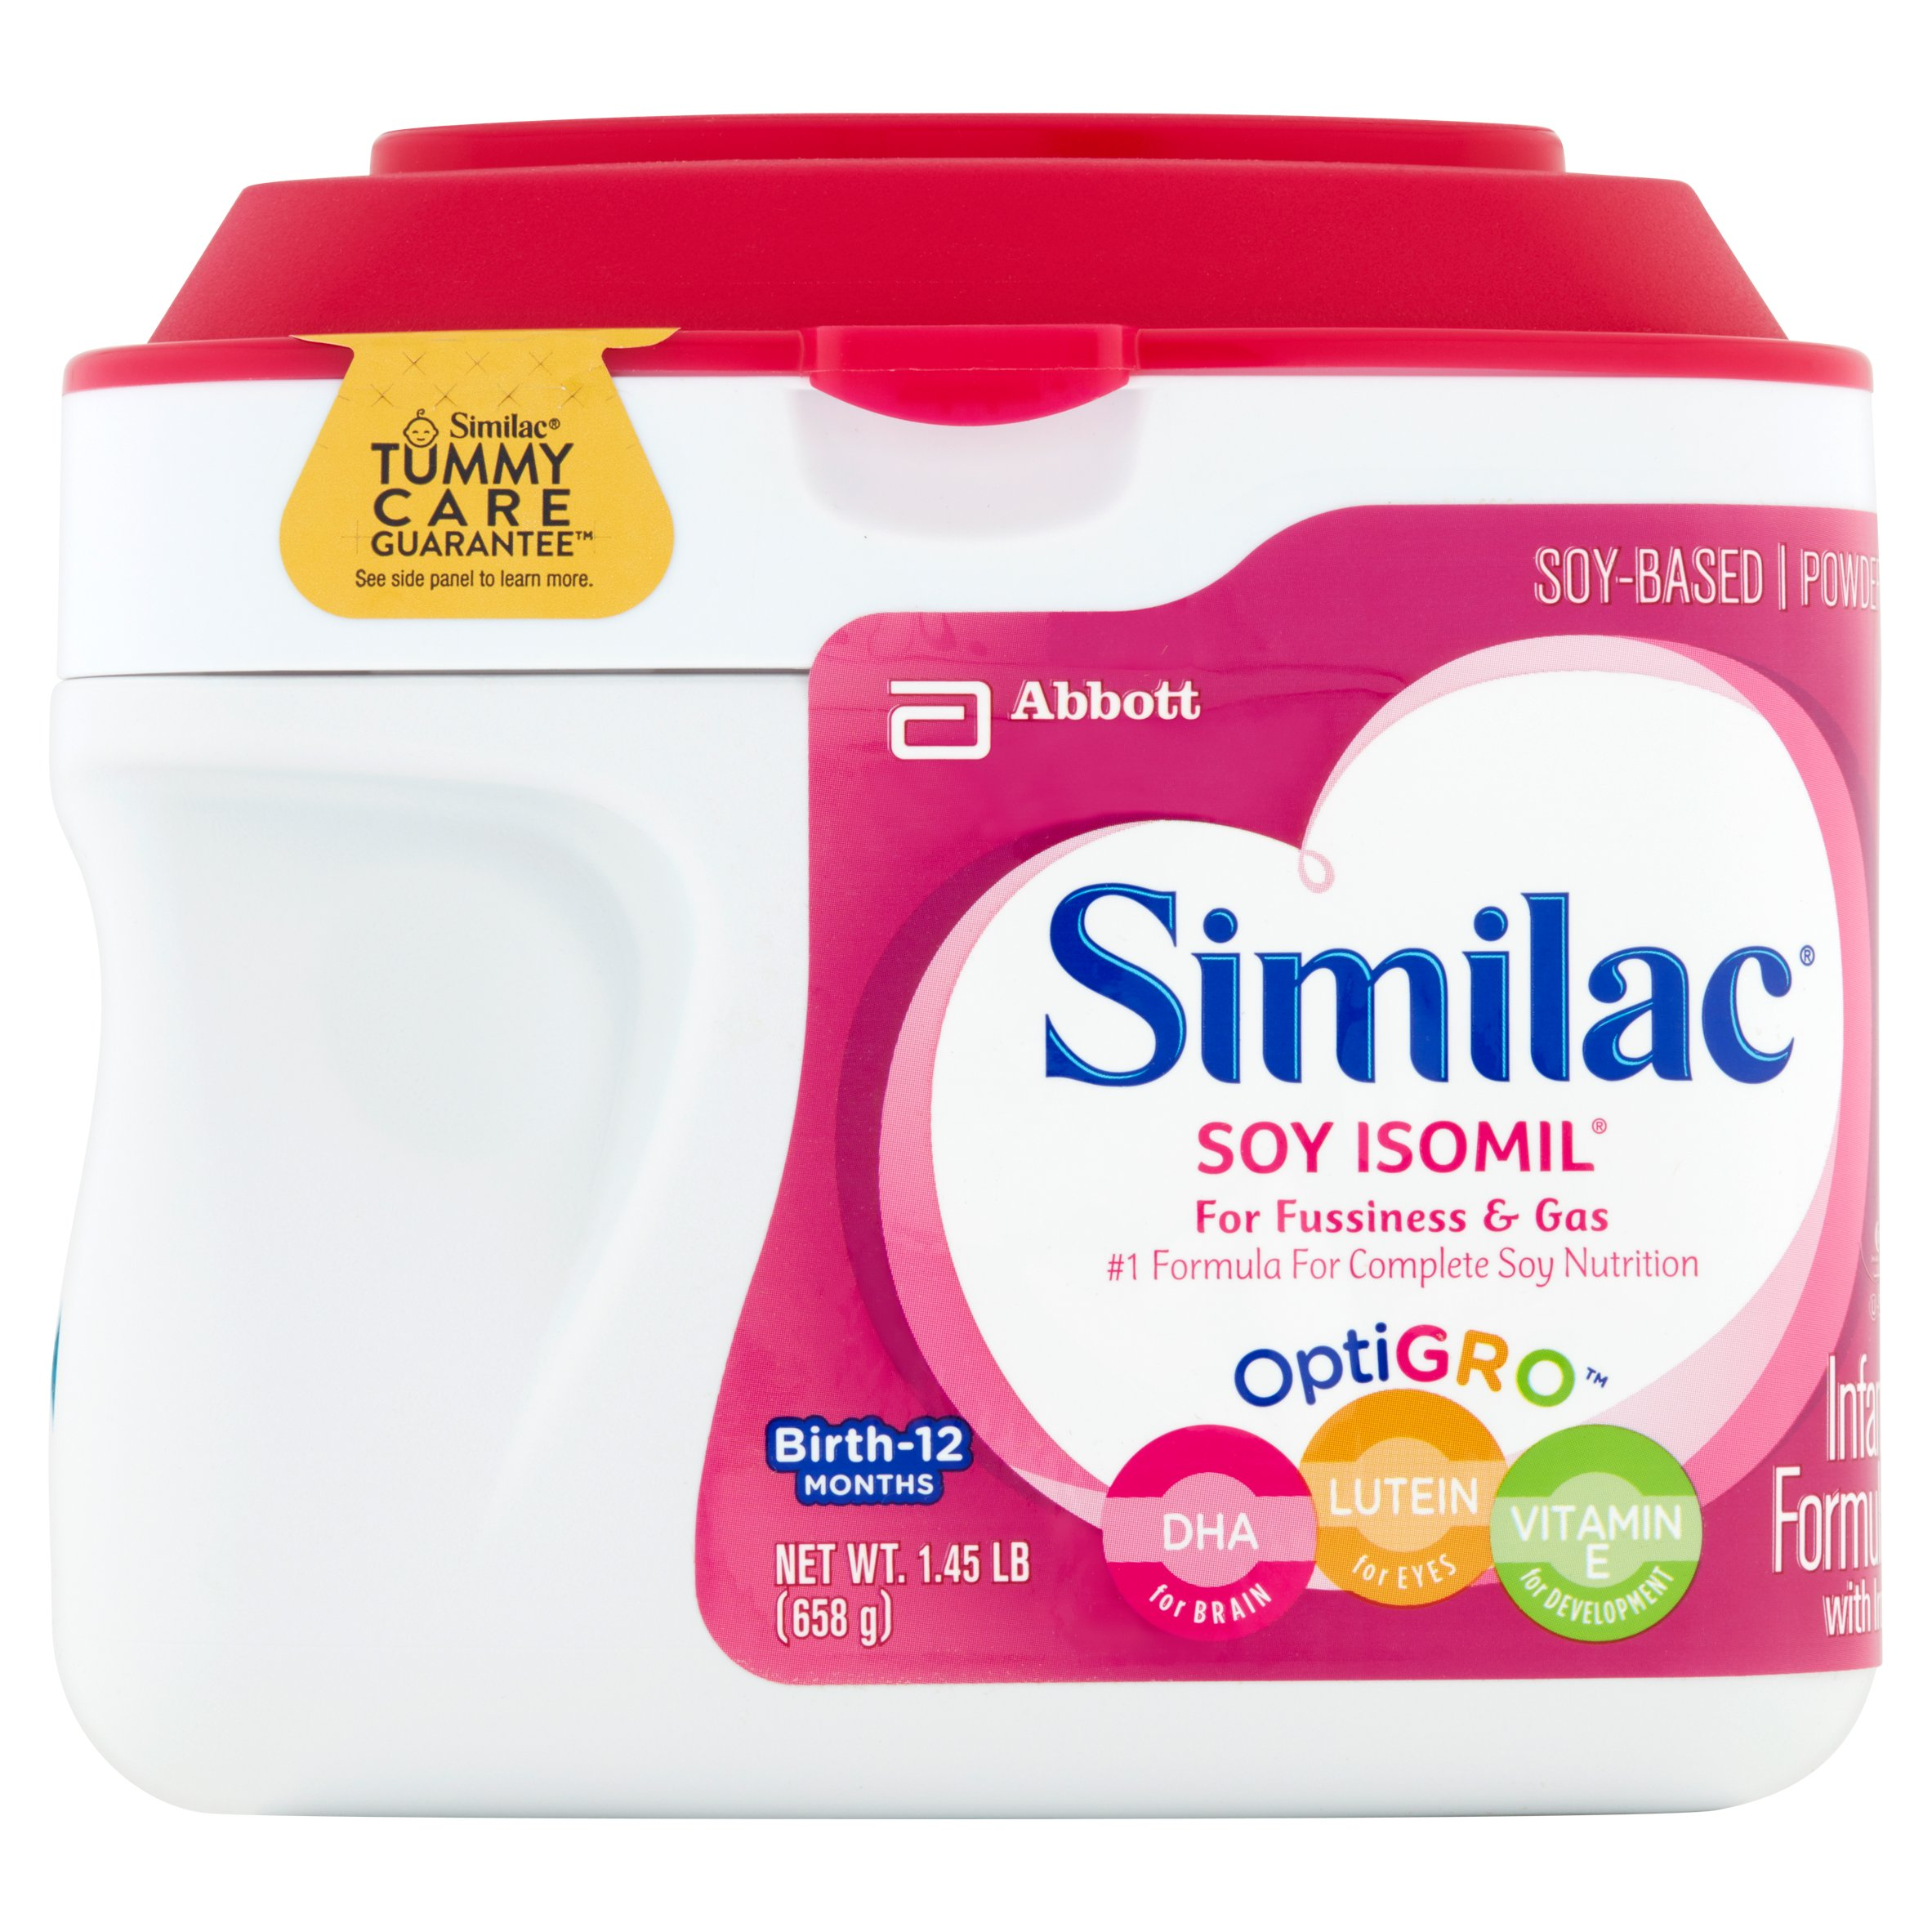 Similac Soy Isomil Soy-Based Powder Infant Formula with Iron Birth-12 Months 6 x 1.45lb (8.7lb) by Similac